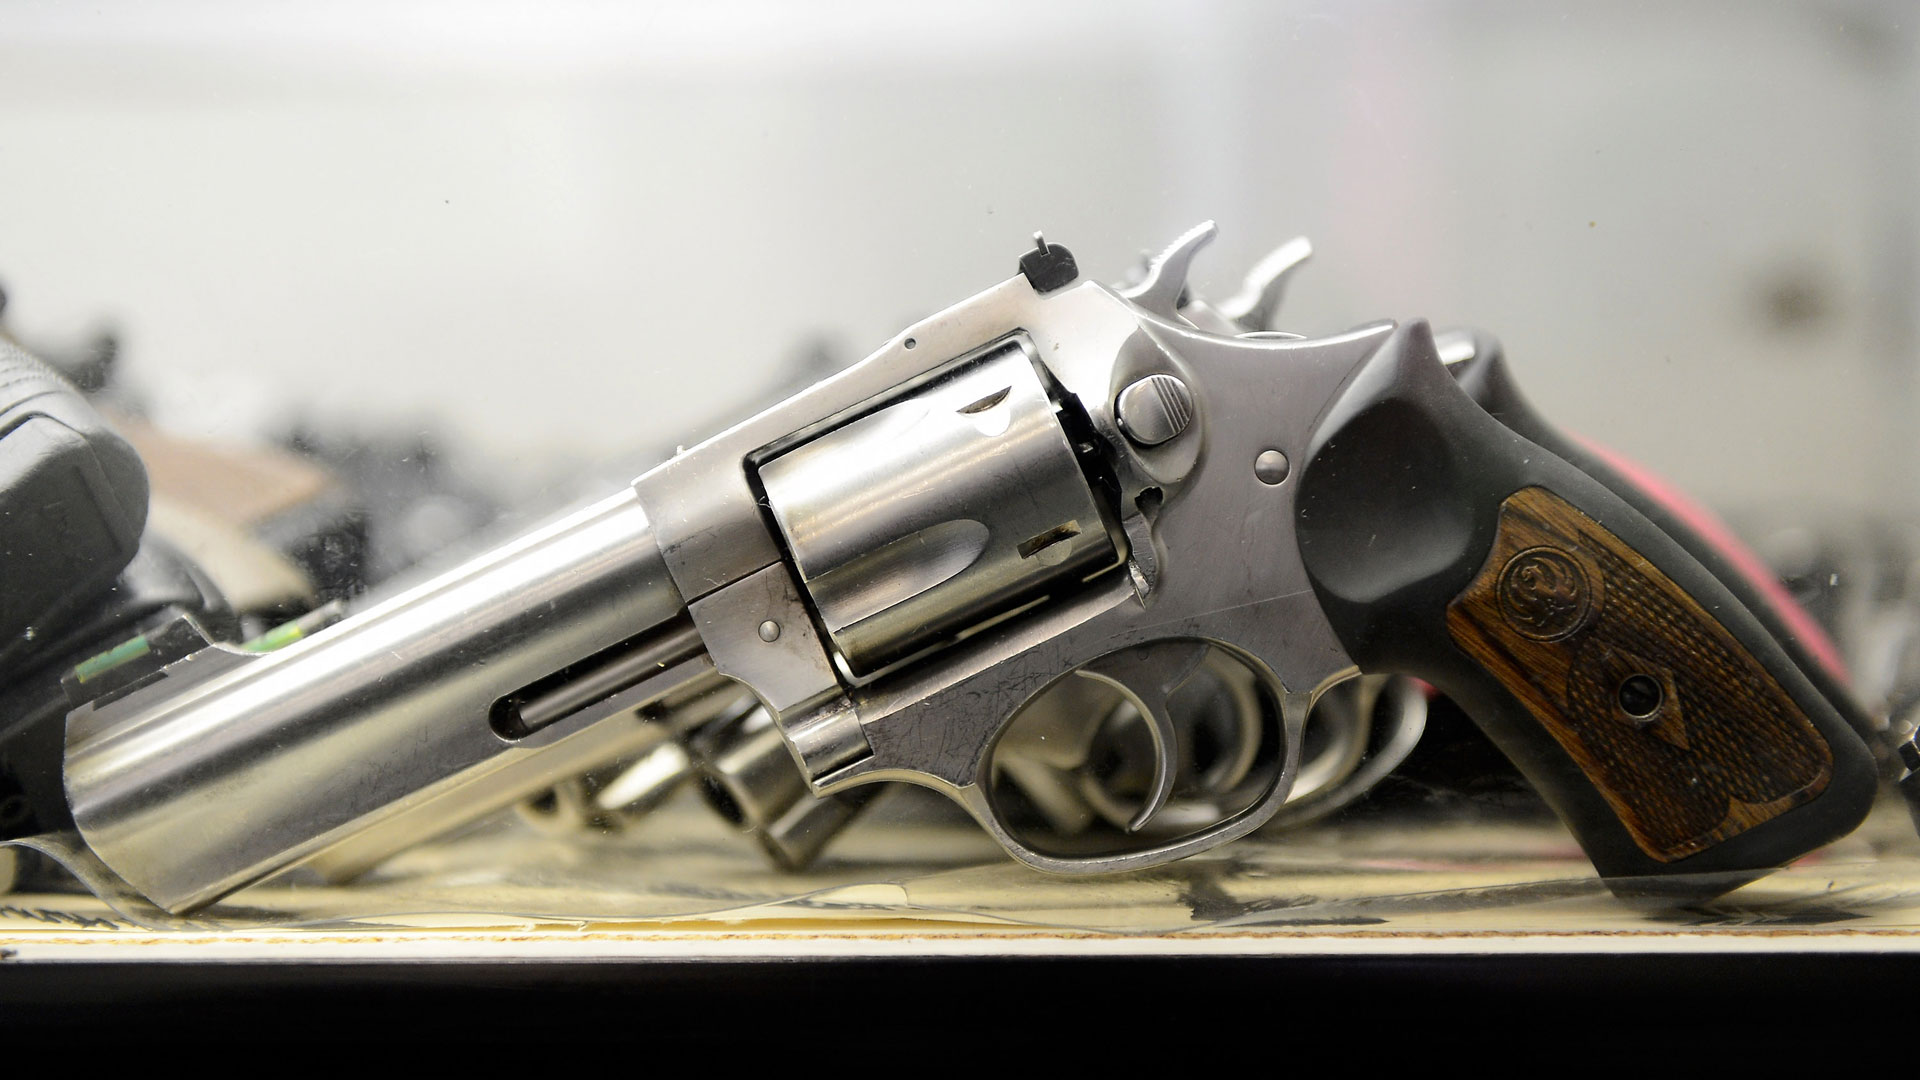 A .357 magnum revolver on display at the Los Angeles Gun Club.